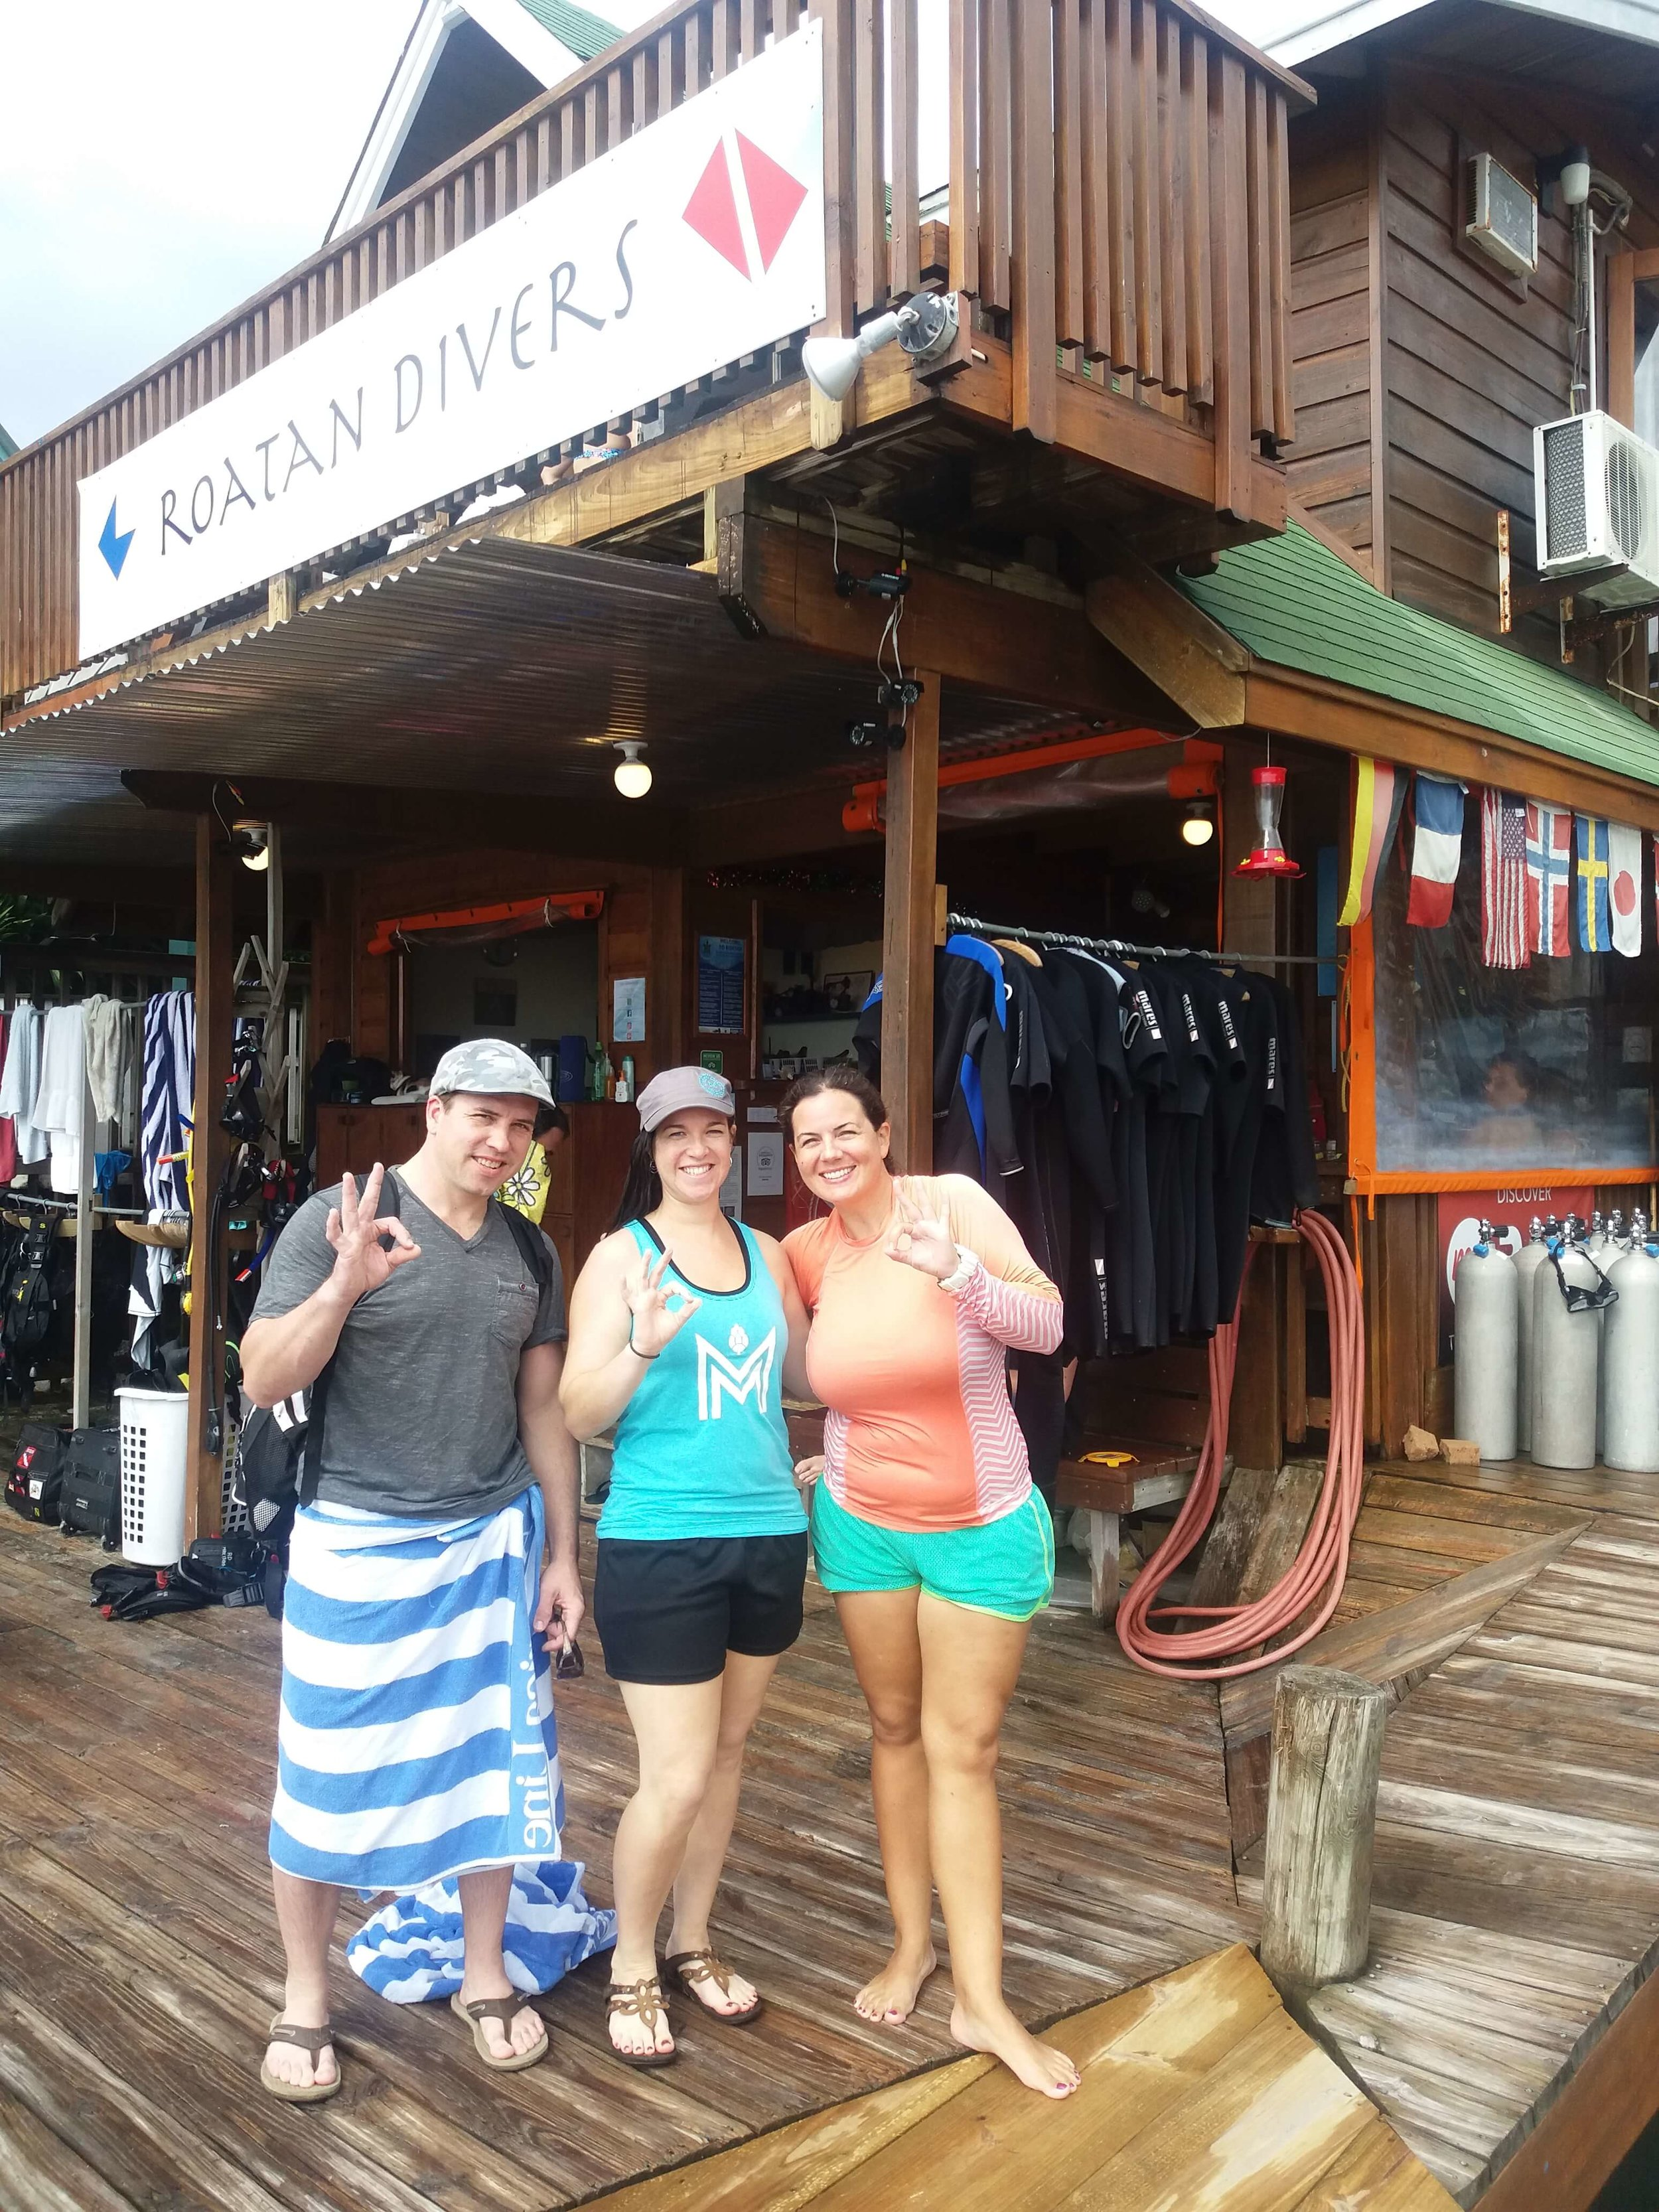 try scuba diving cruise ship Roatan